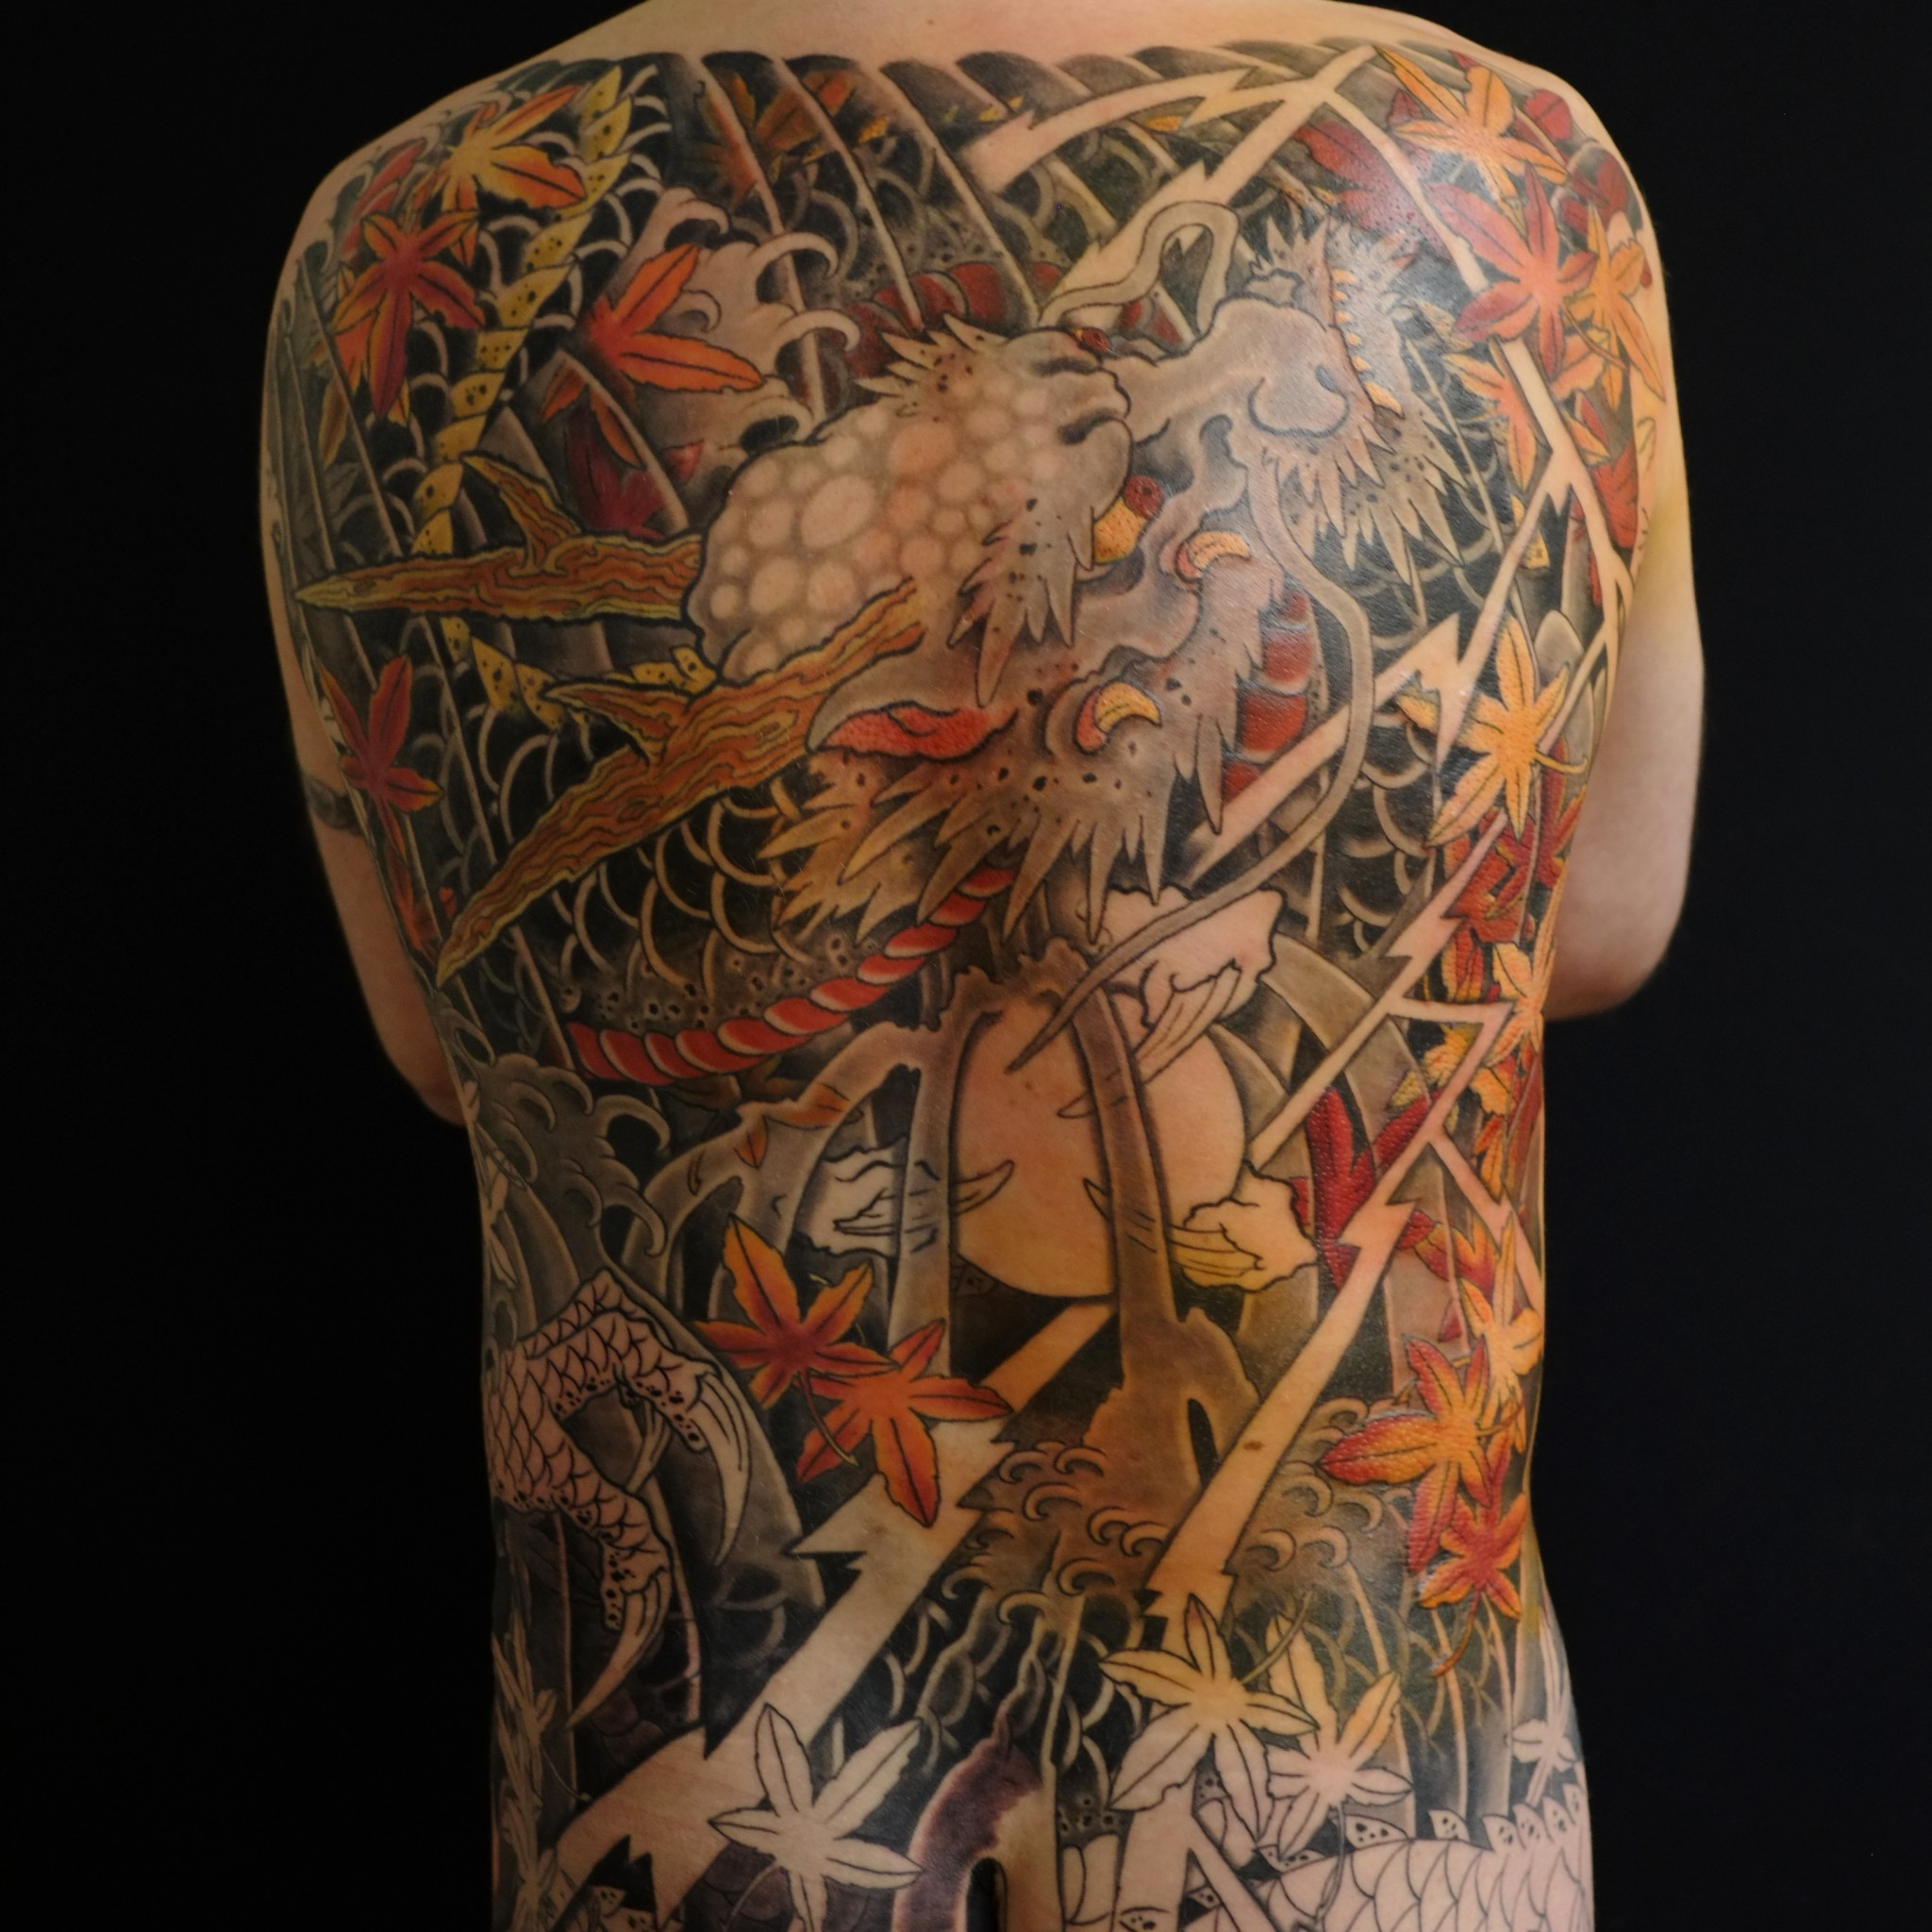 ifugao art tattoo Rice terraces, a woman's forearm tattoos, a sagada tribal burial site, a 100 year old female, a head hunting trophy skull, and an ifugao shaman: all pictures in the.